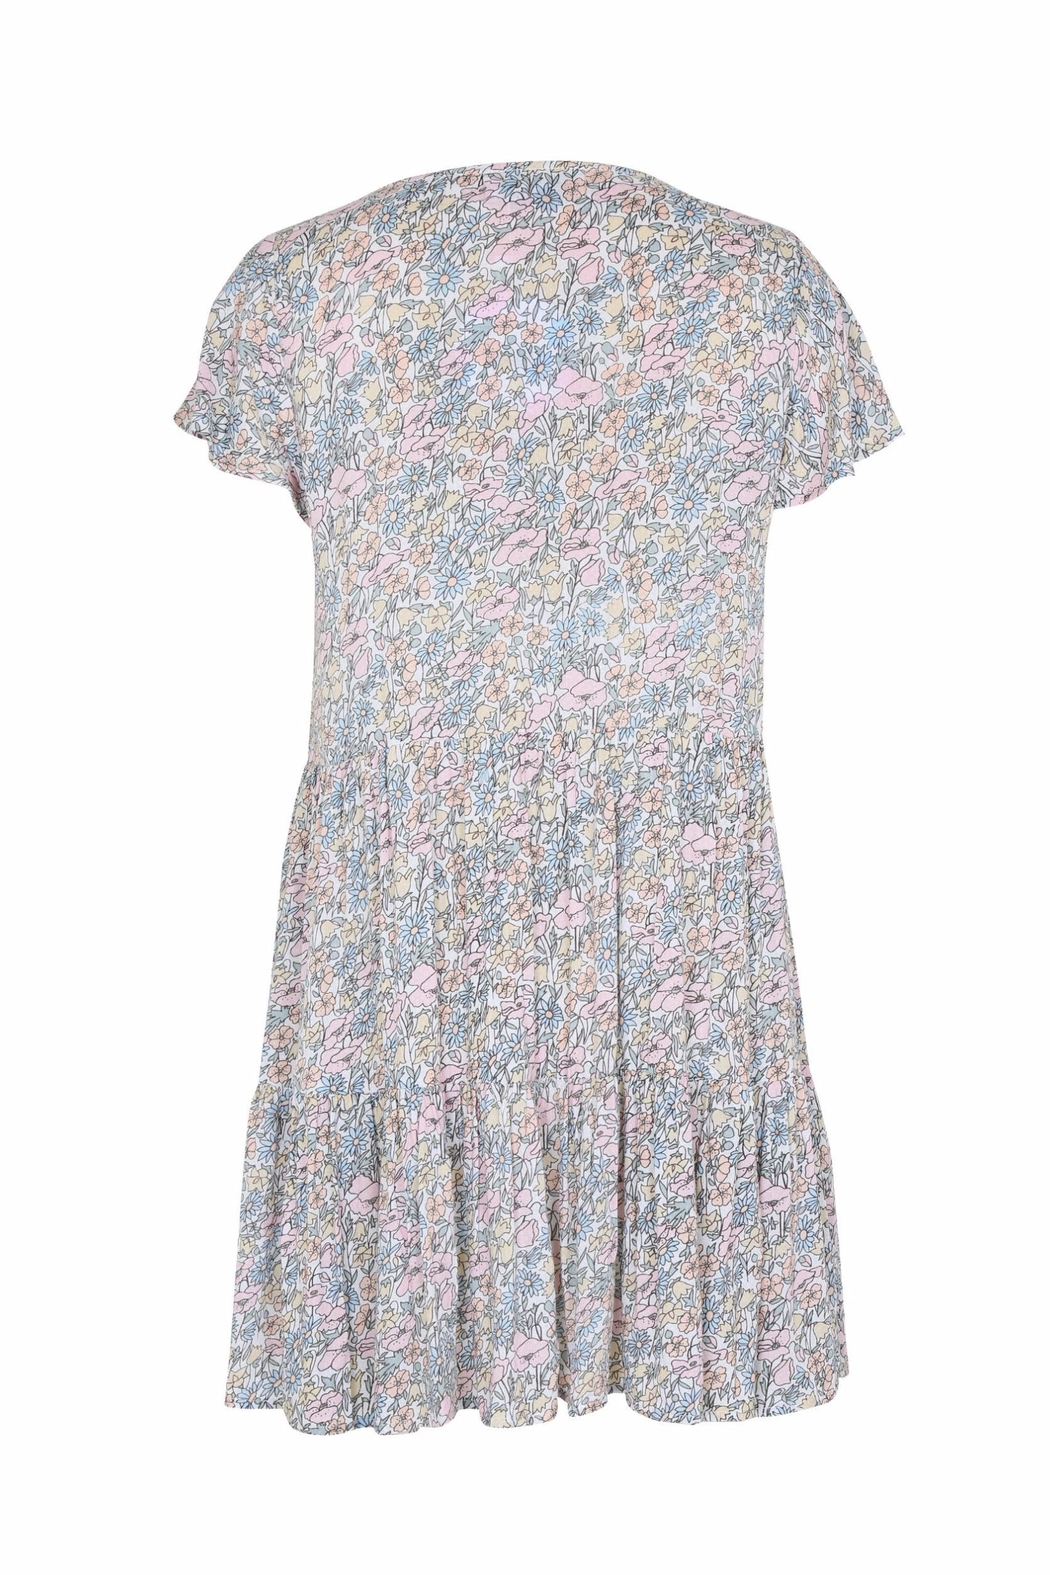 Auguste The Label  Babydoll Floral Mini - Front Full Image